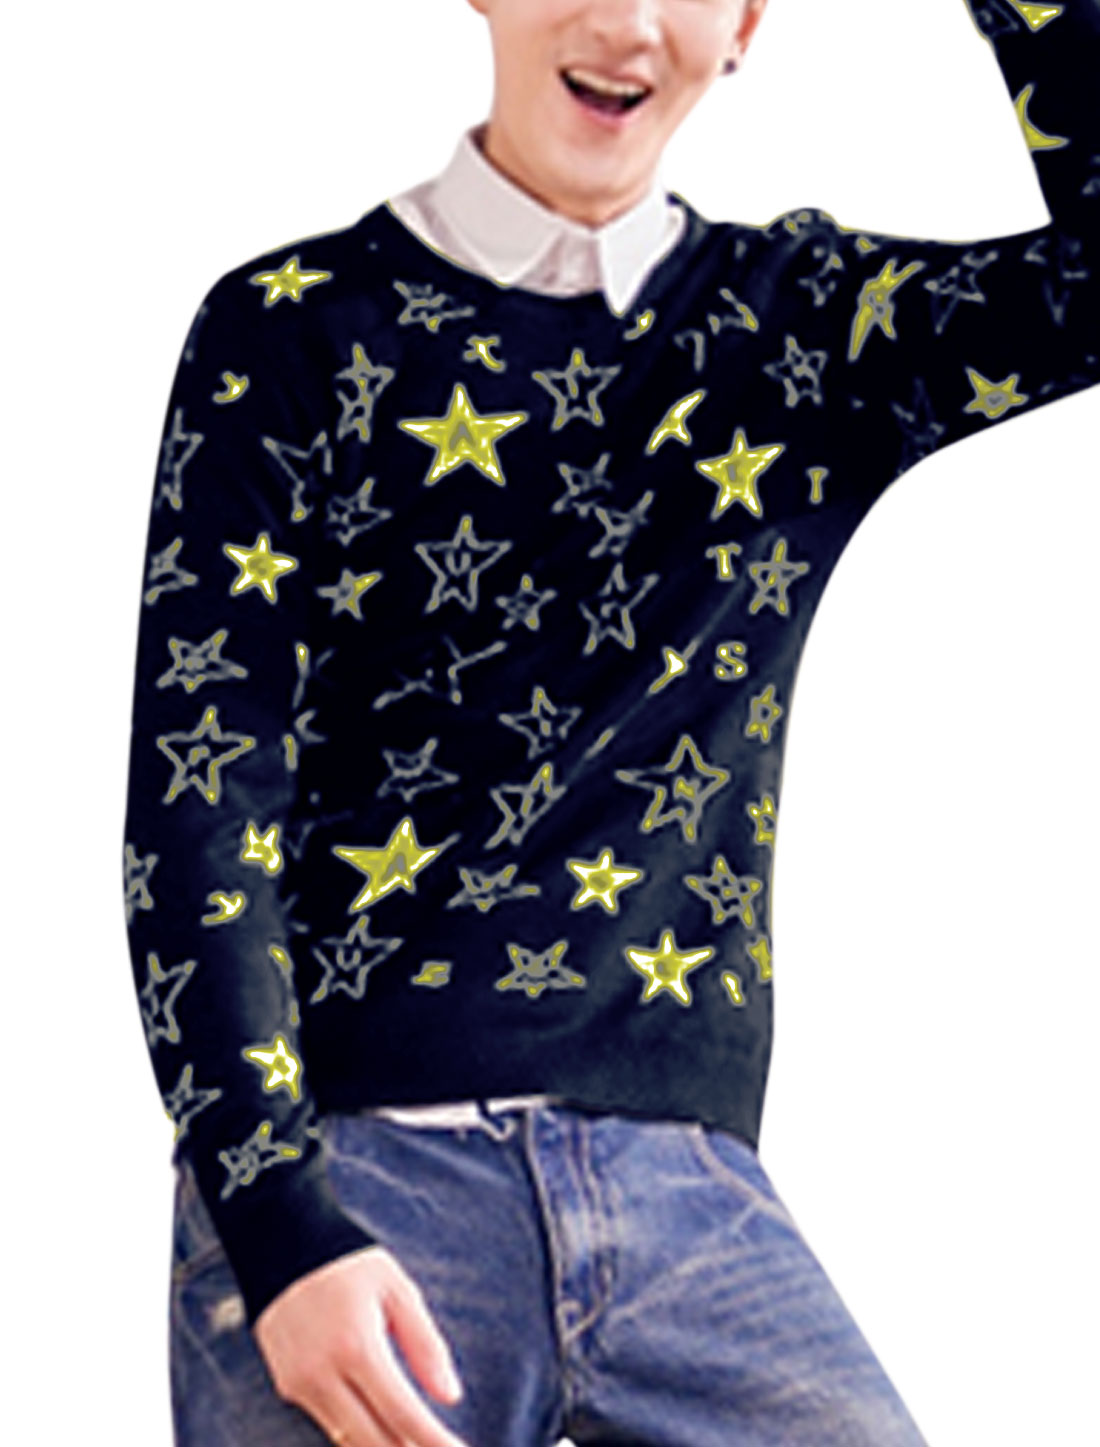 Man Stars Pattern Long Sleeves Pullover Navy Blue Sweater M